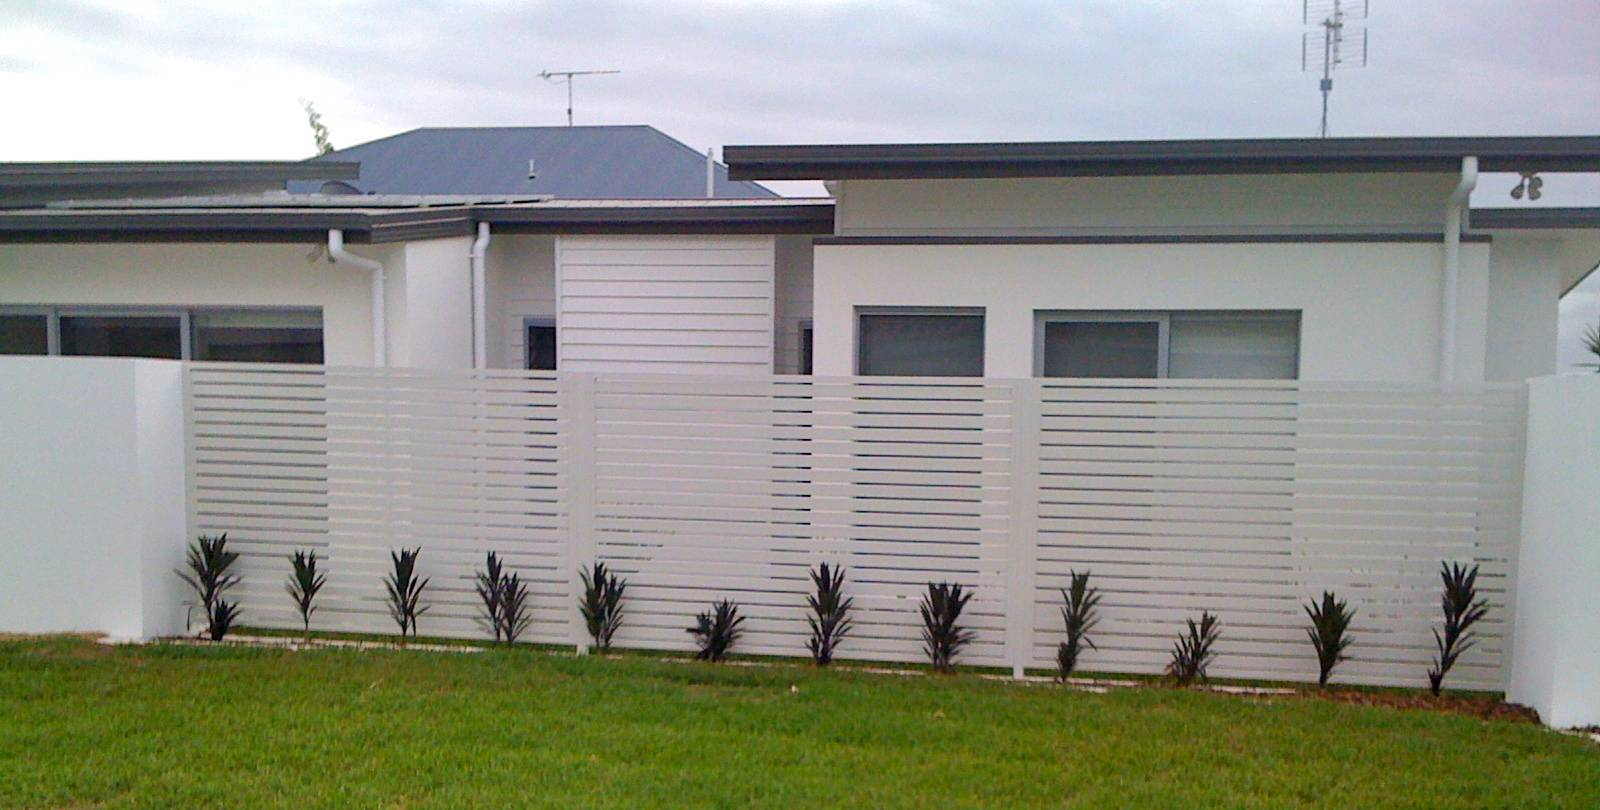 Horizontal slatted fence panels